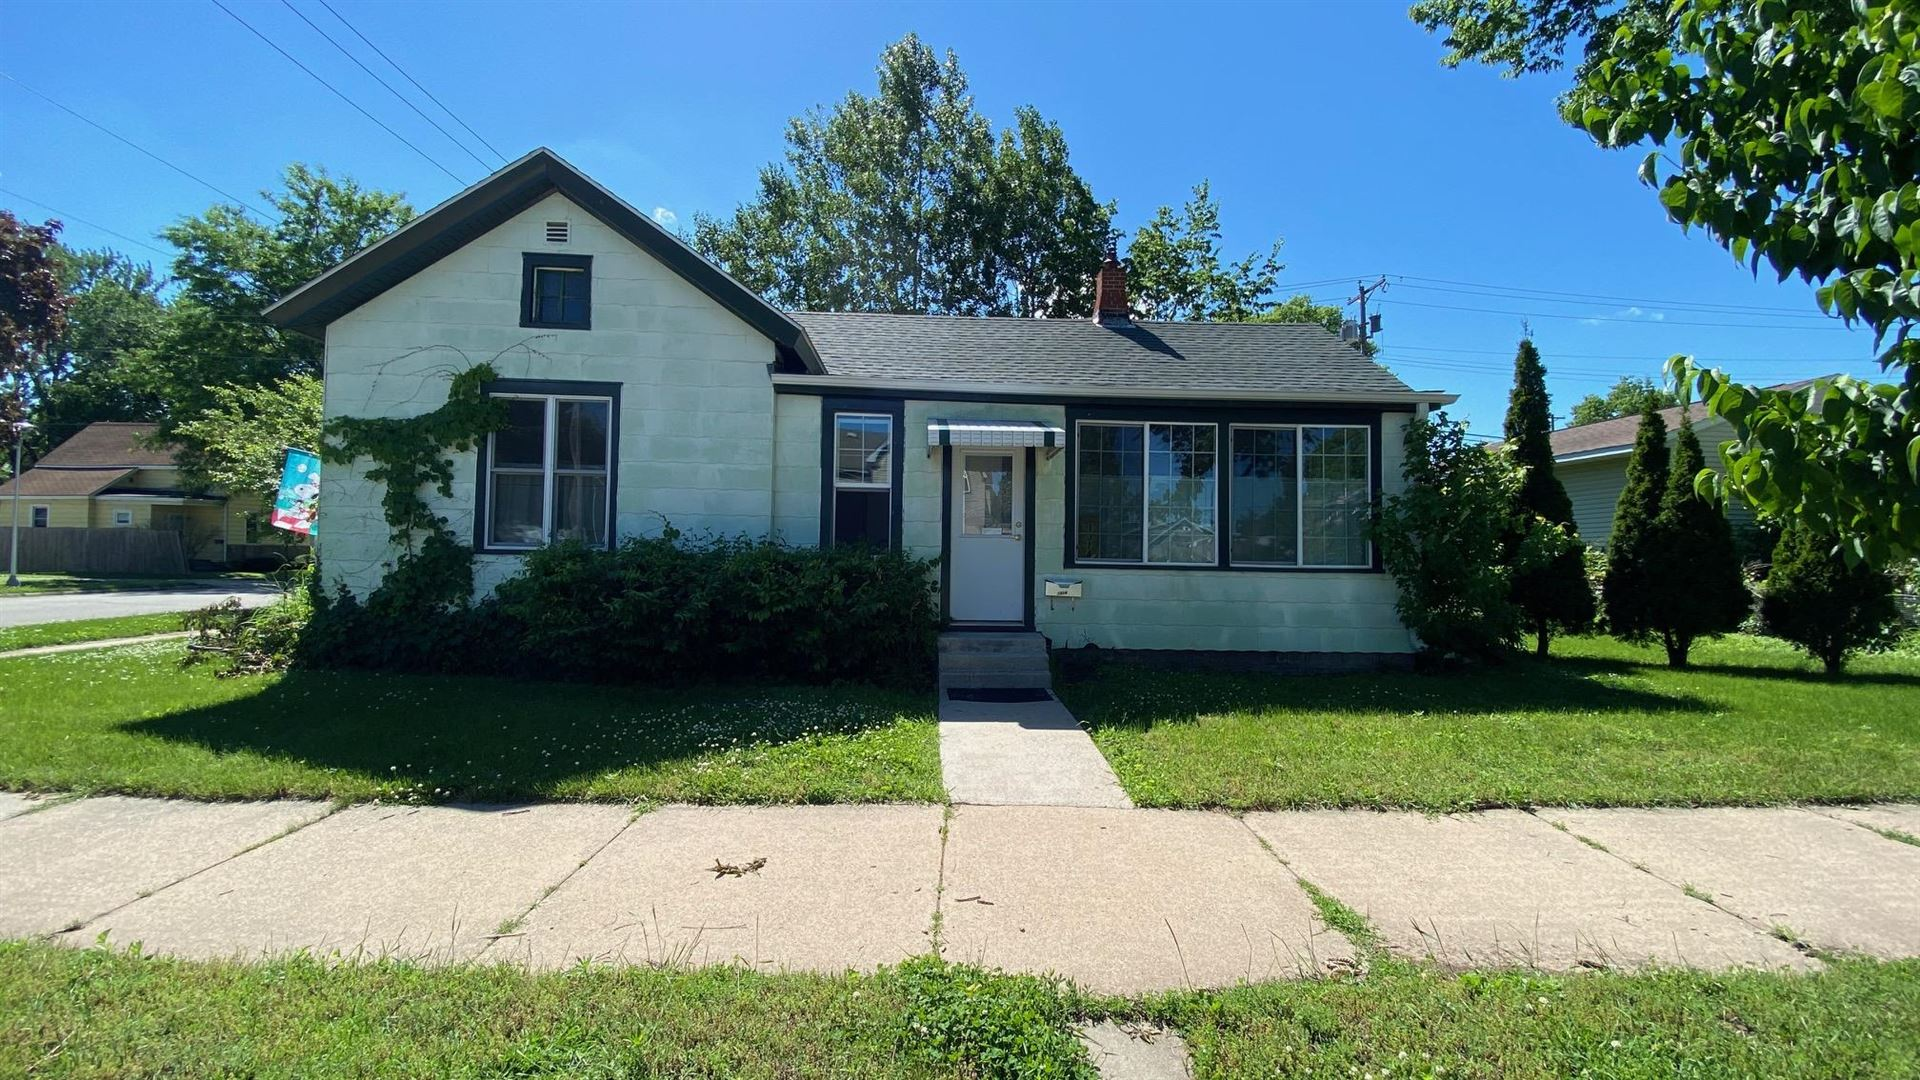 1314 9th St S, La Crosse, WI 54601 - MLS#: 1692519